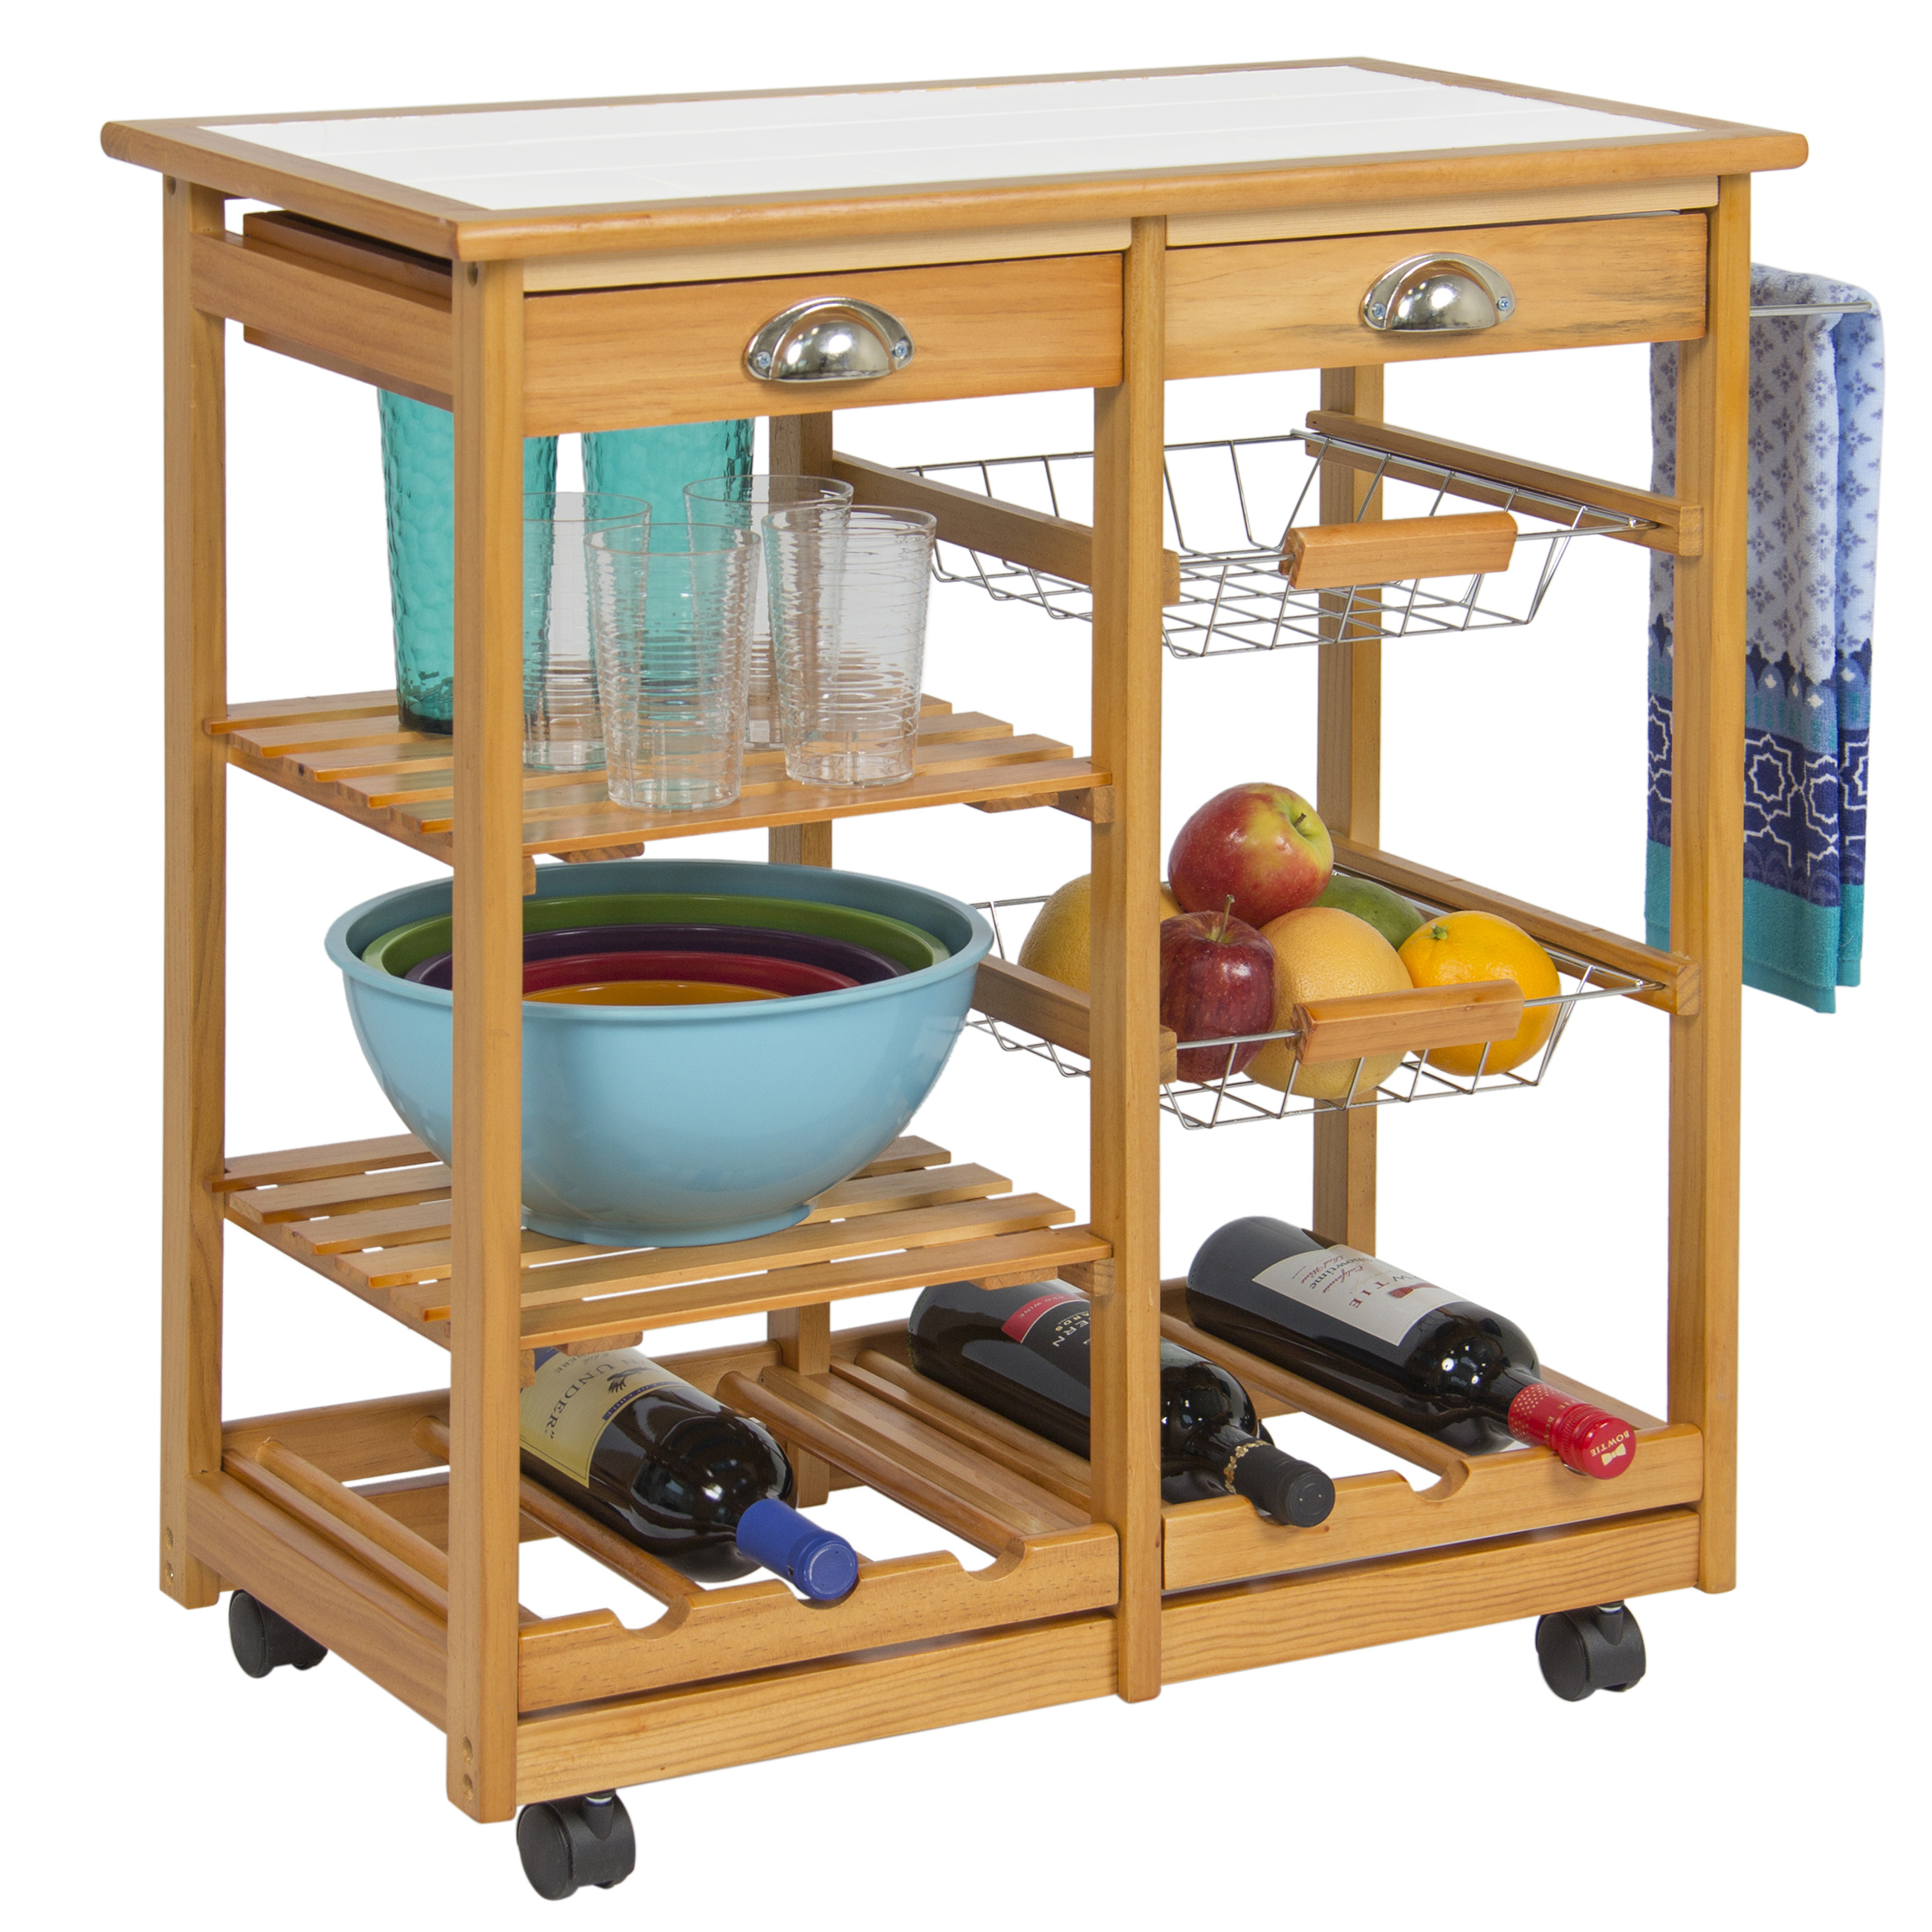 Best Choice Products Rolling Wood Kitchen Storage Cart Dining Trolley W/ Drawers